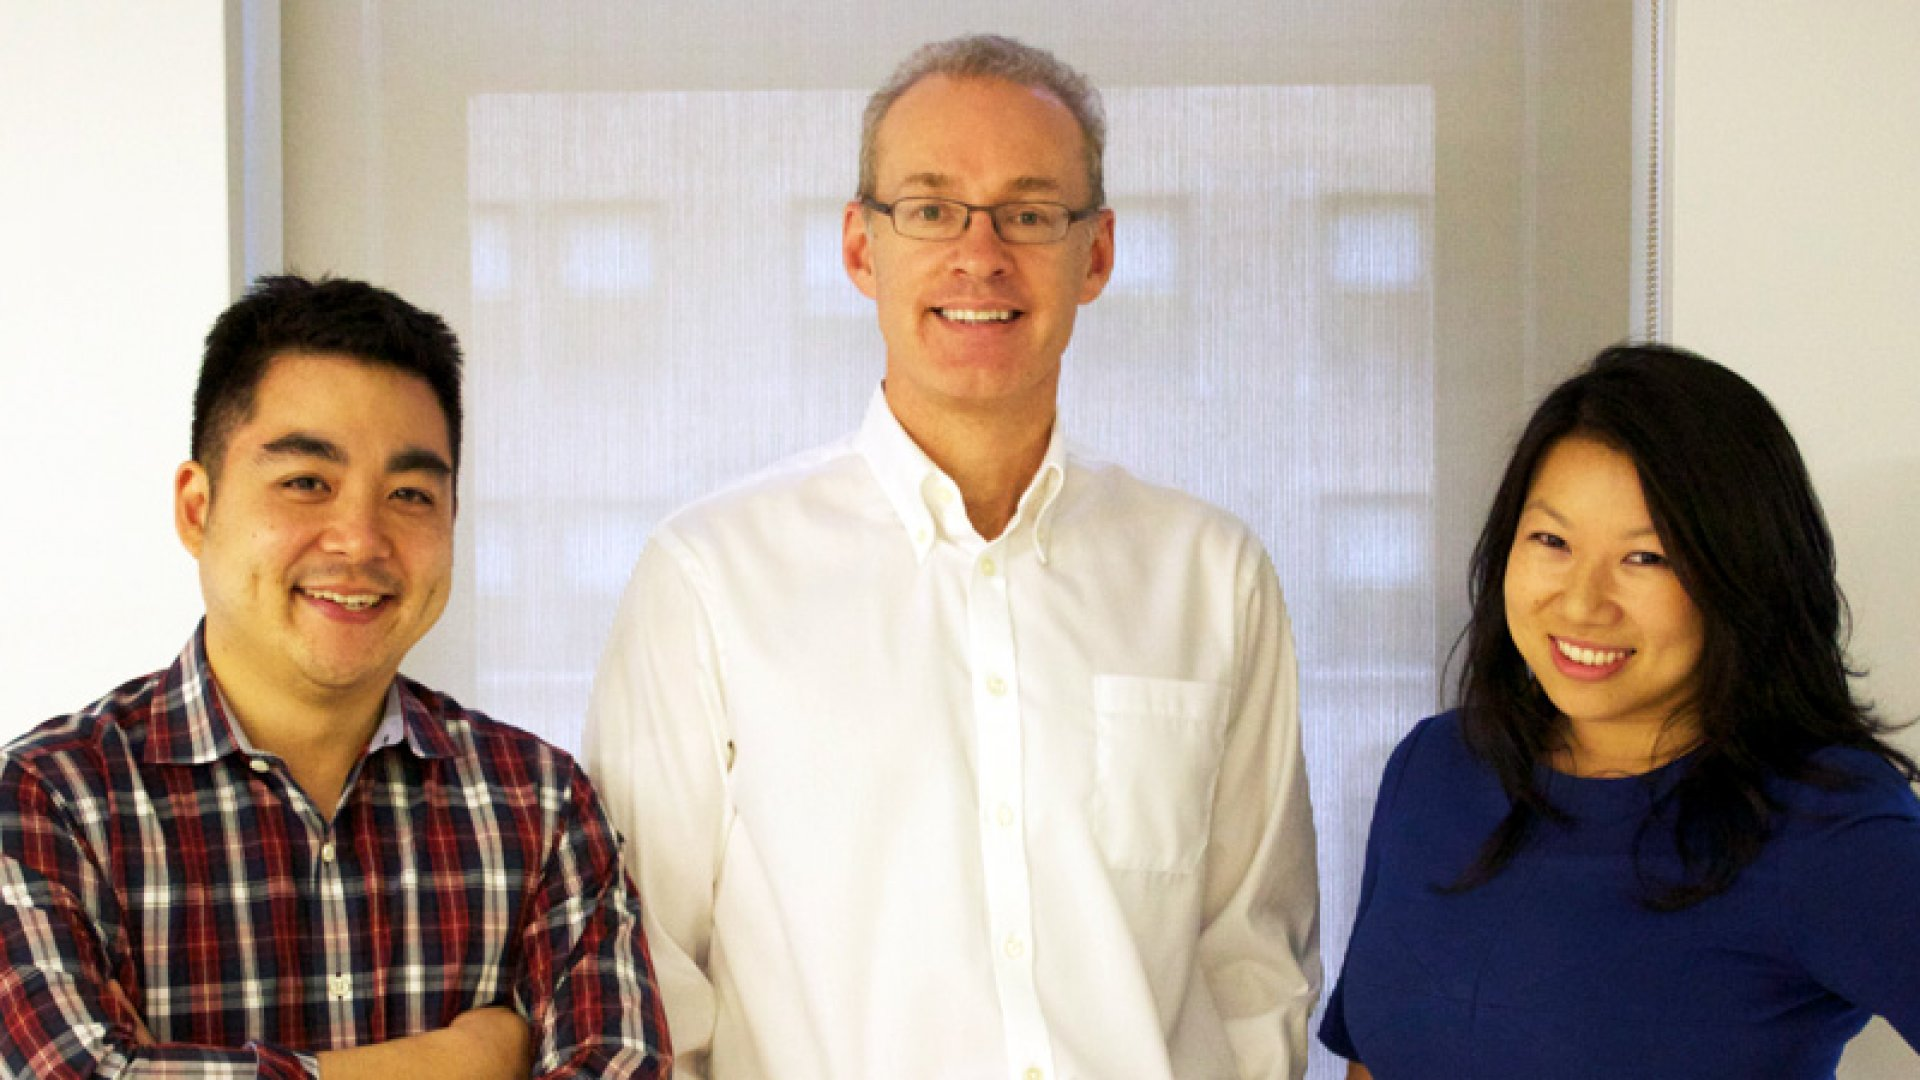 Meet Zola: Shan-Lyn Ma, CEO and co-founder (at right), Kevin Ryan, chairman and co-founder (center), and Nobu Nakaguchi, CDO and co-founder.